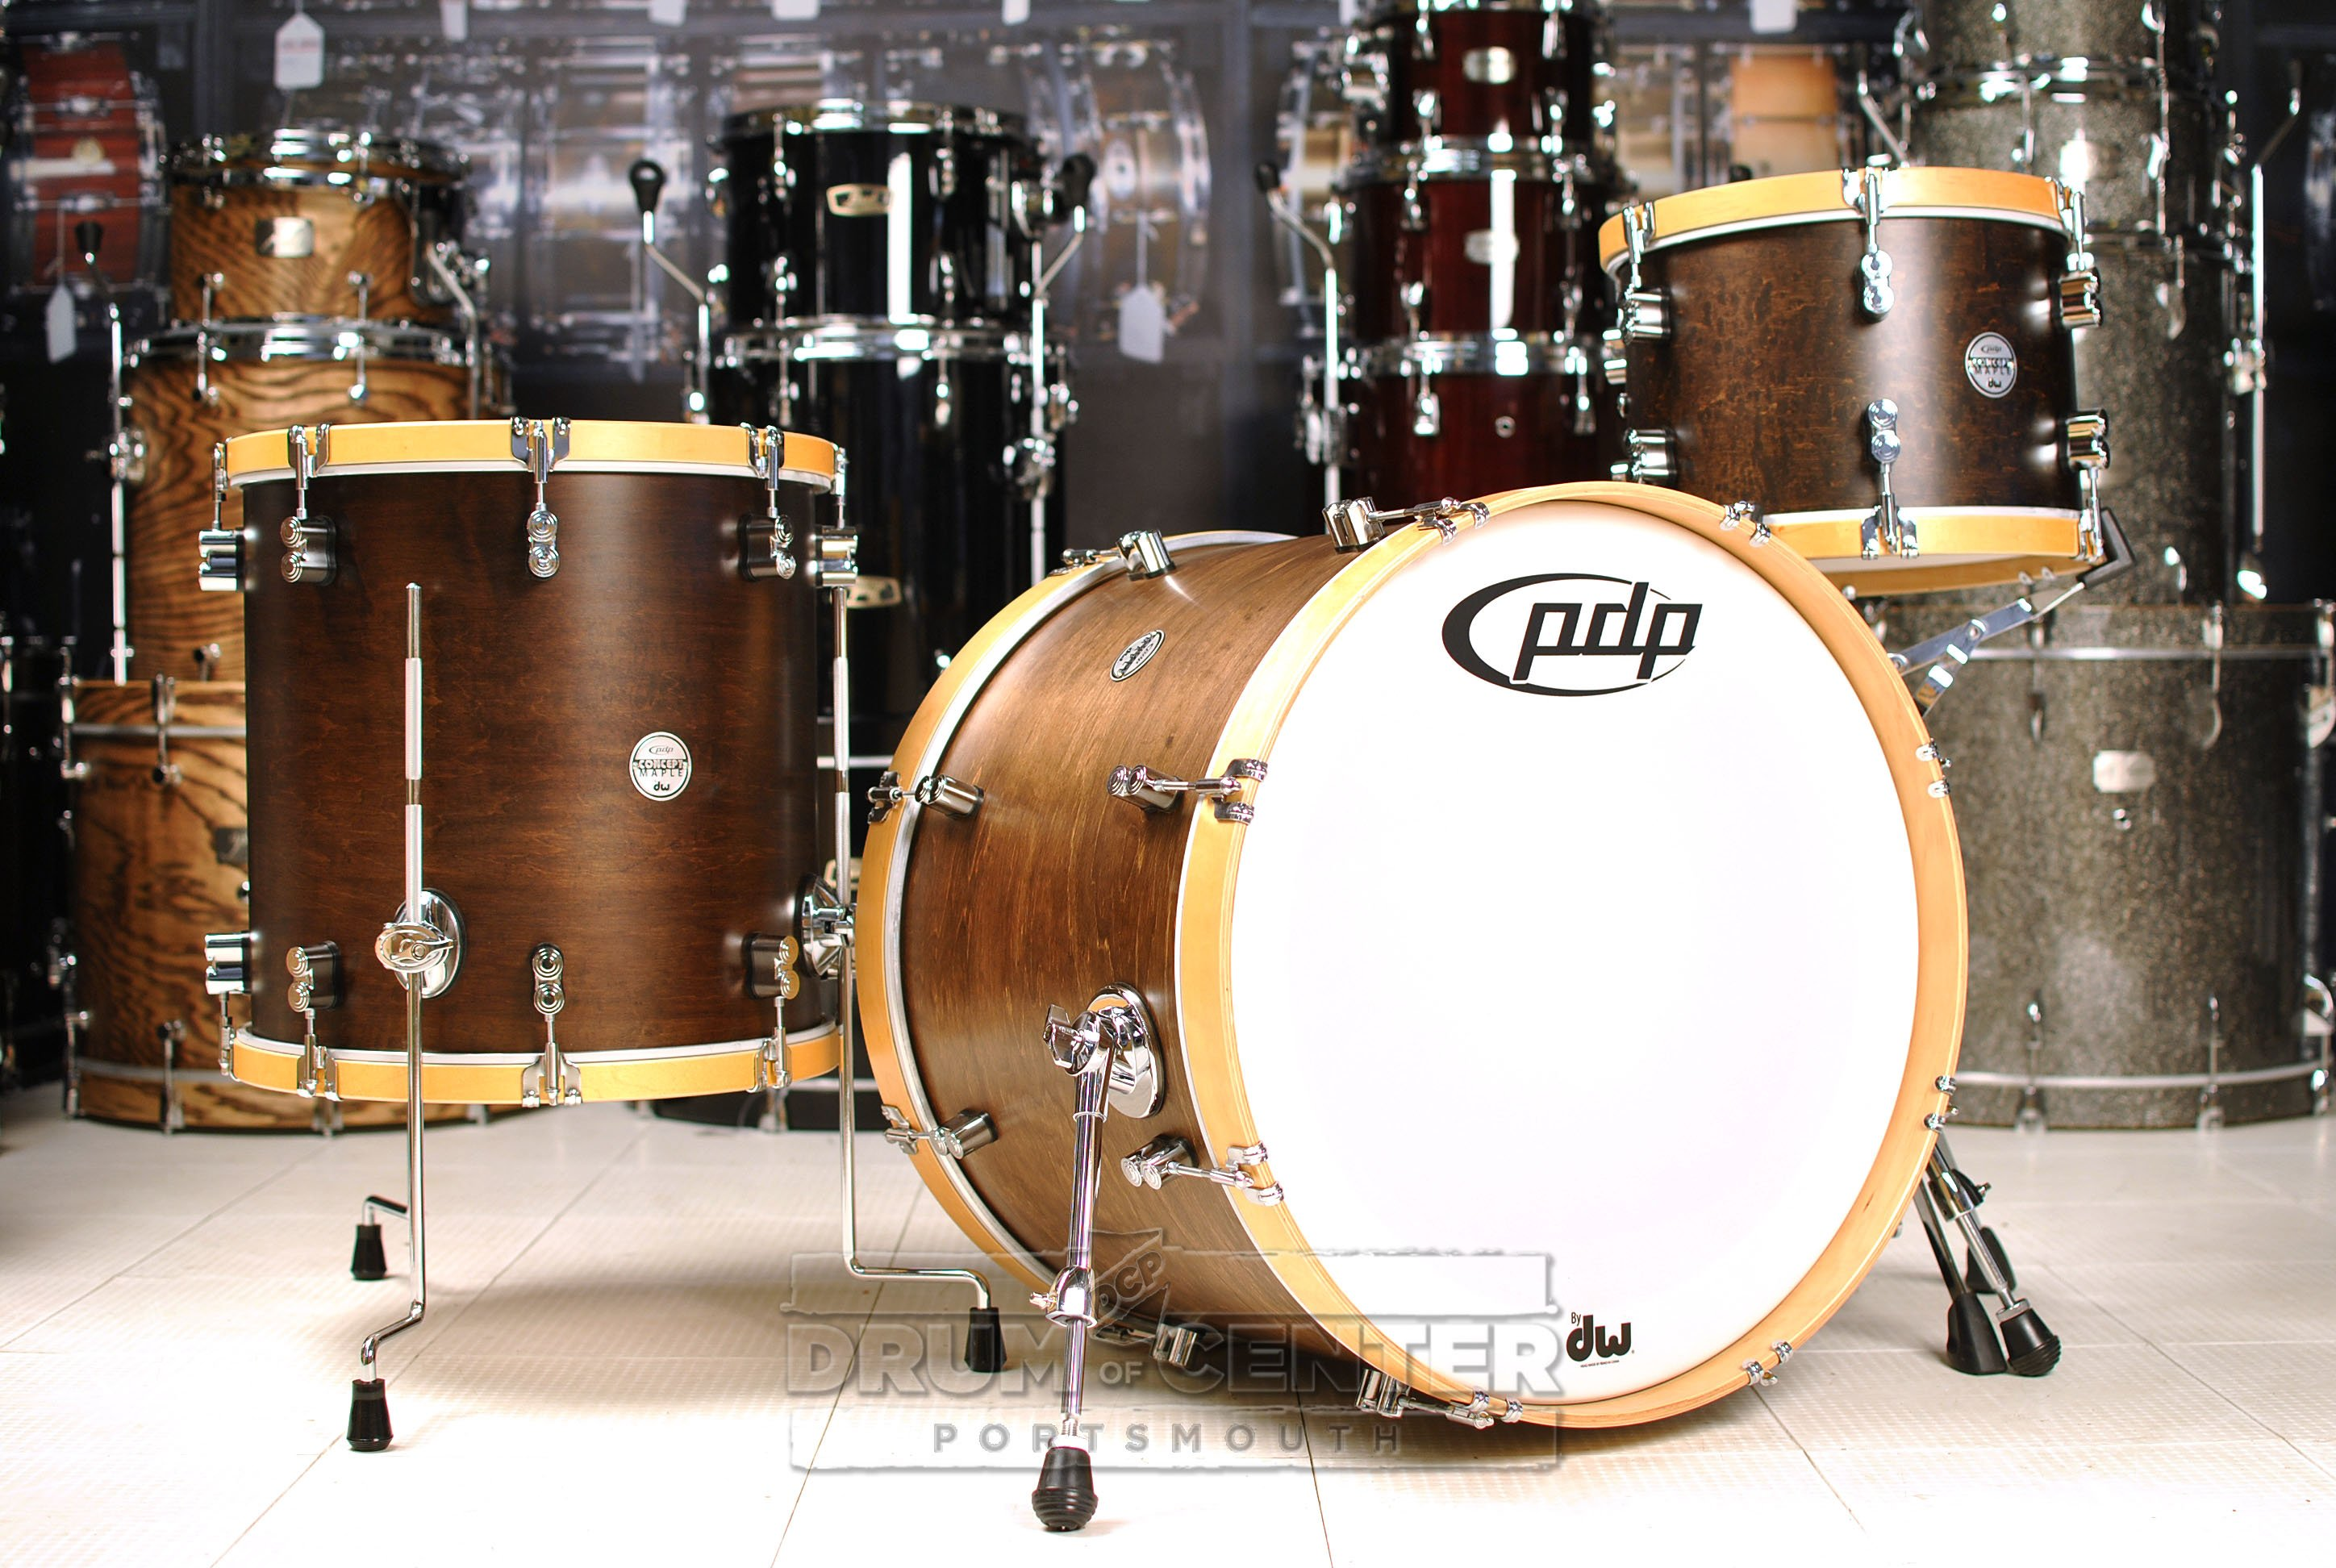 pdp concept maple classic 3pc drum set 22 13 16 tobacco w natural wood hoops